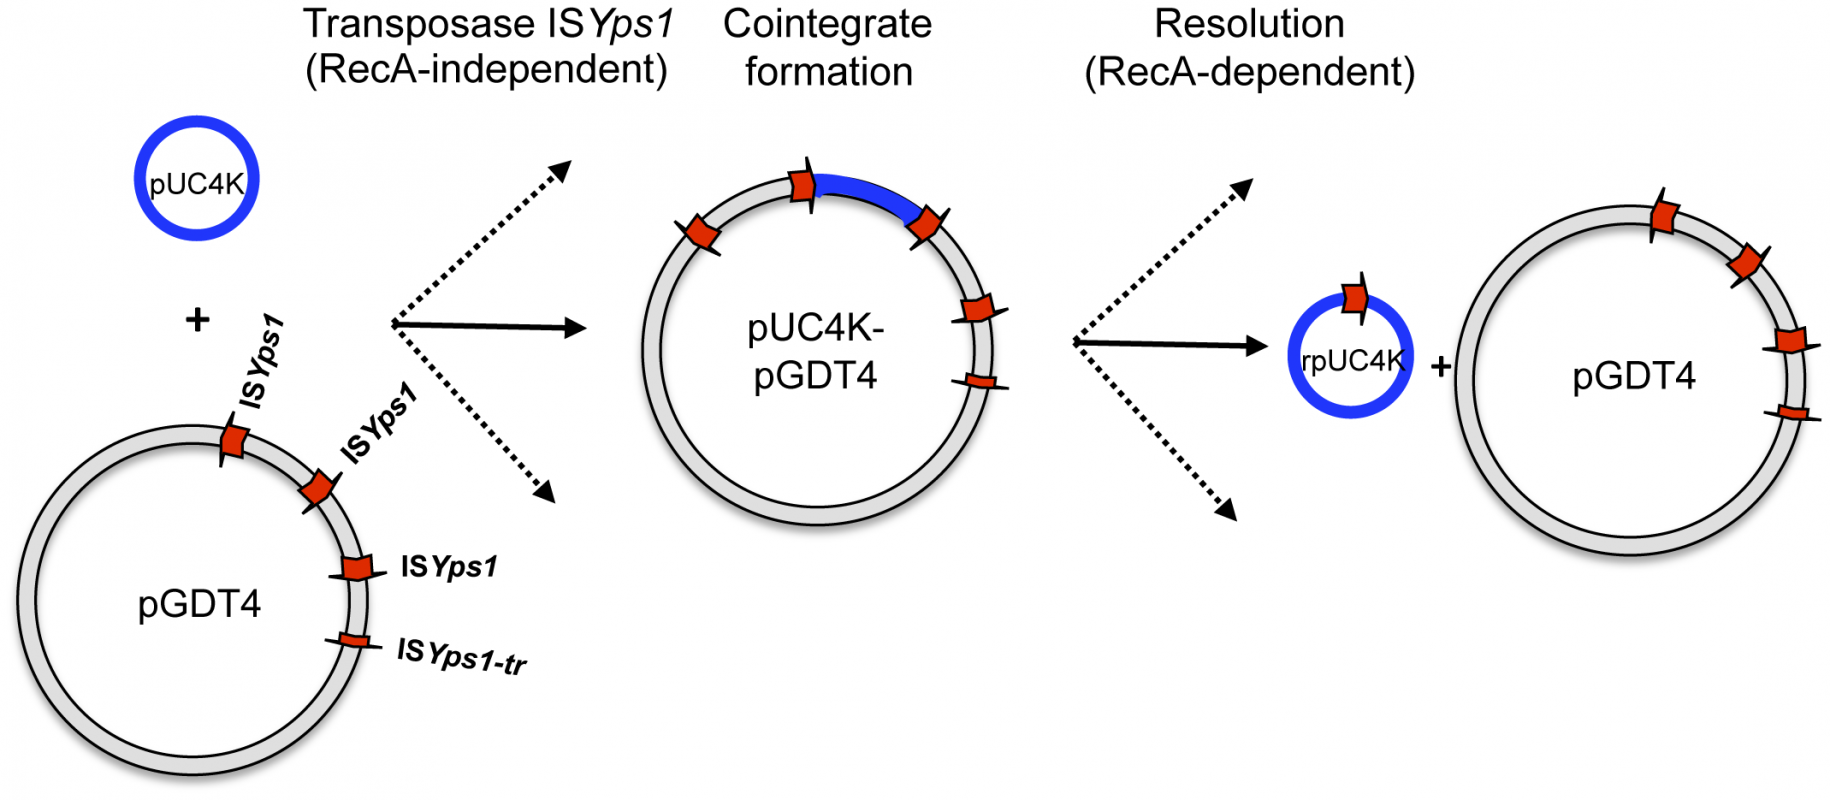 Model proposed for pUC4K mobilization based on the transposition mechanism of the IS<i>6</i> family.